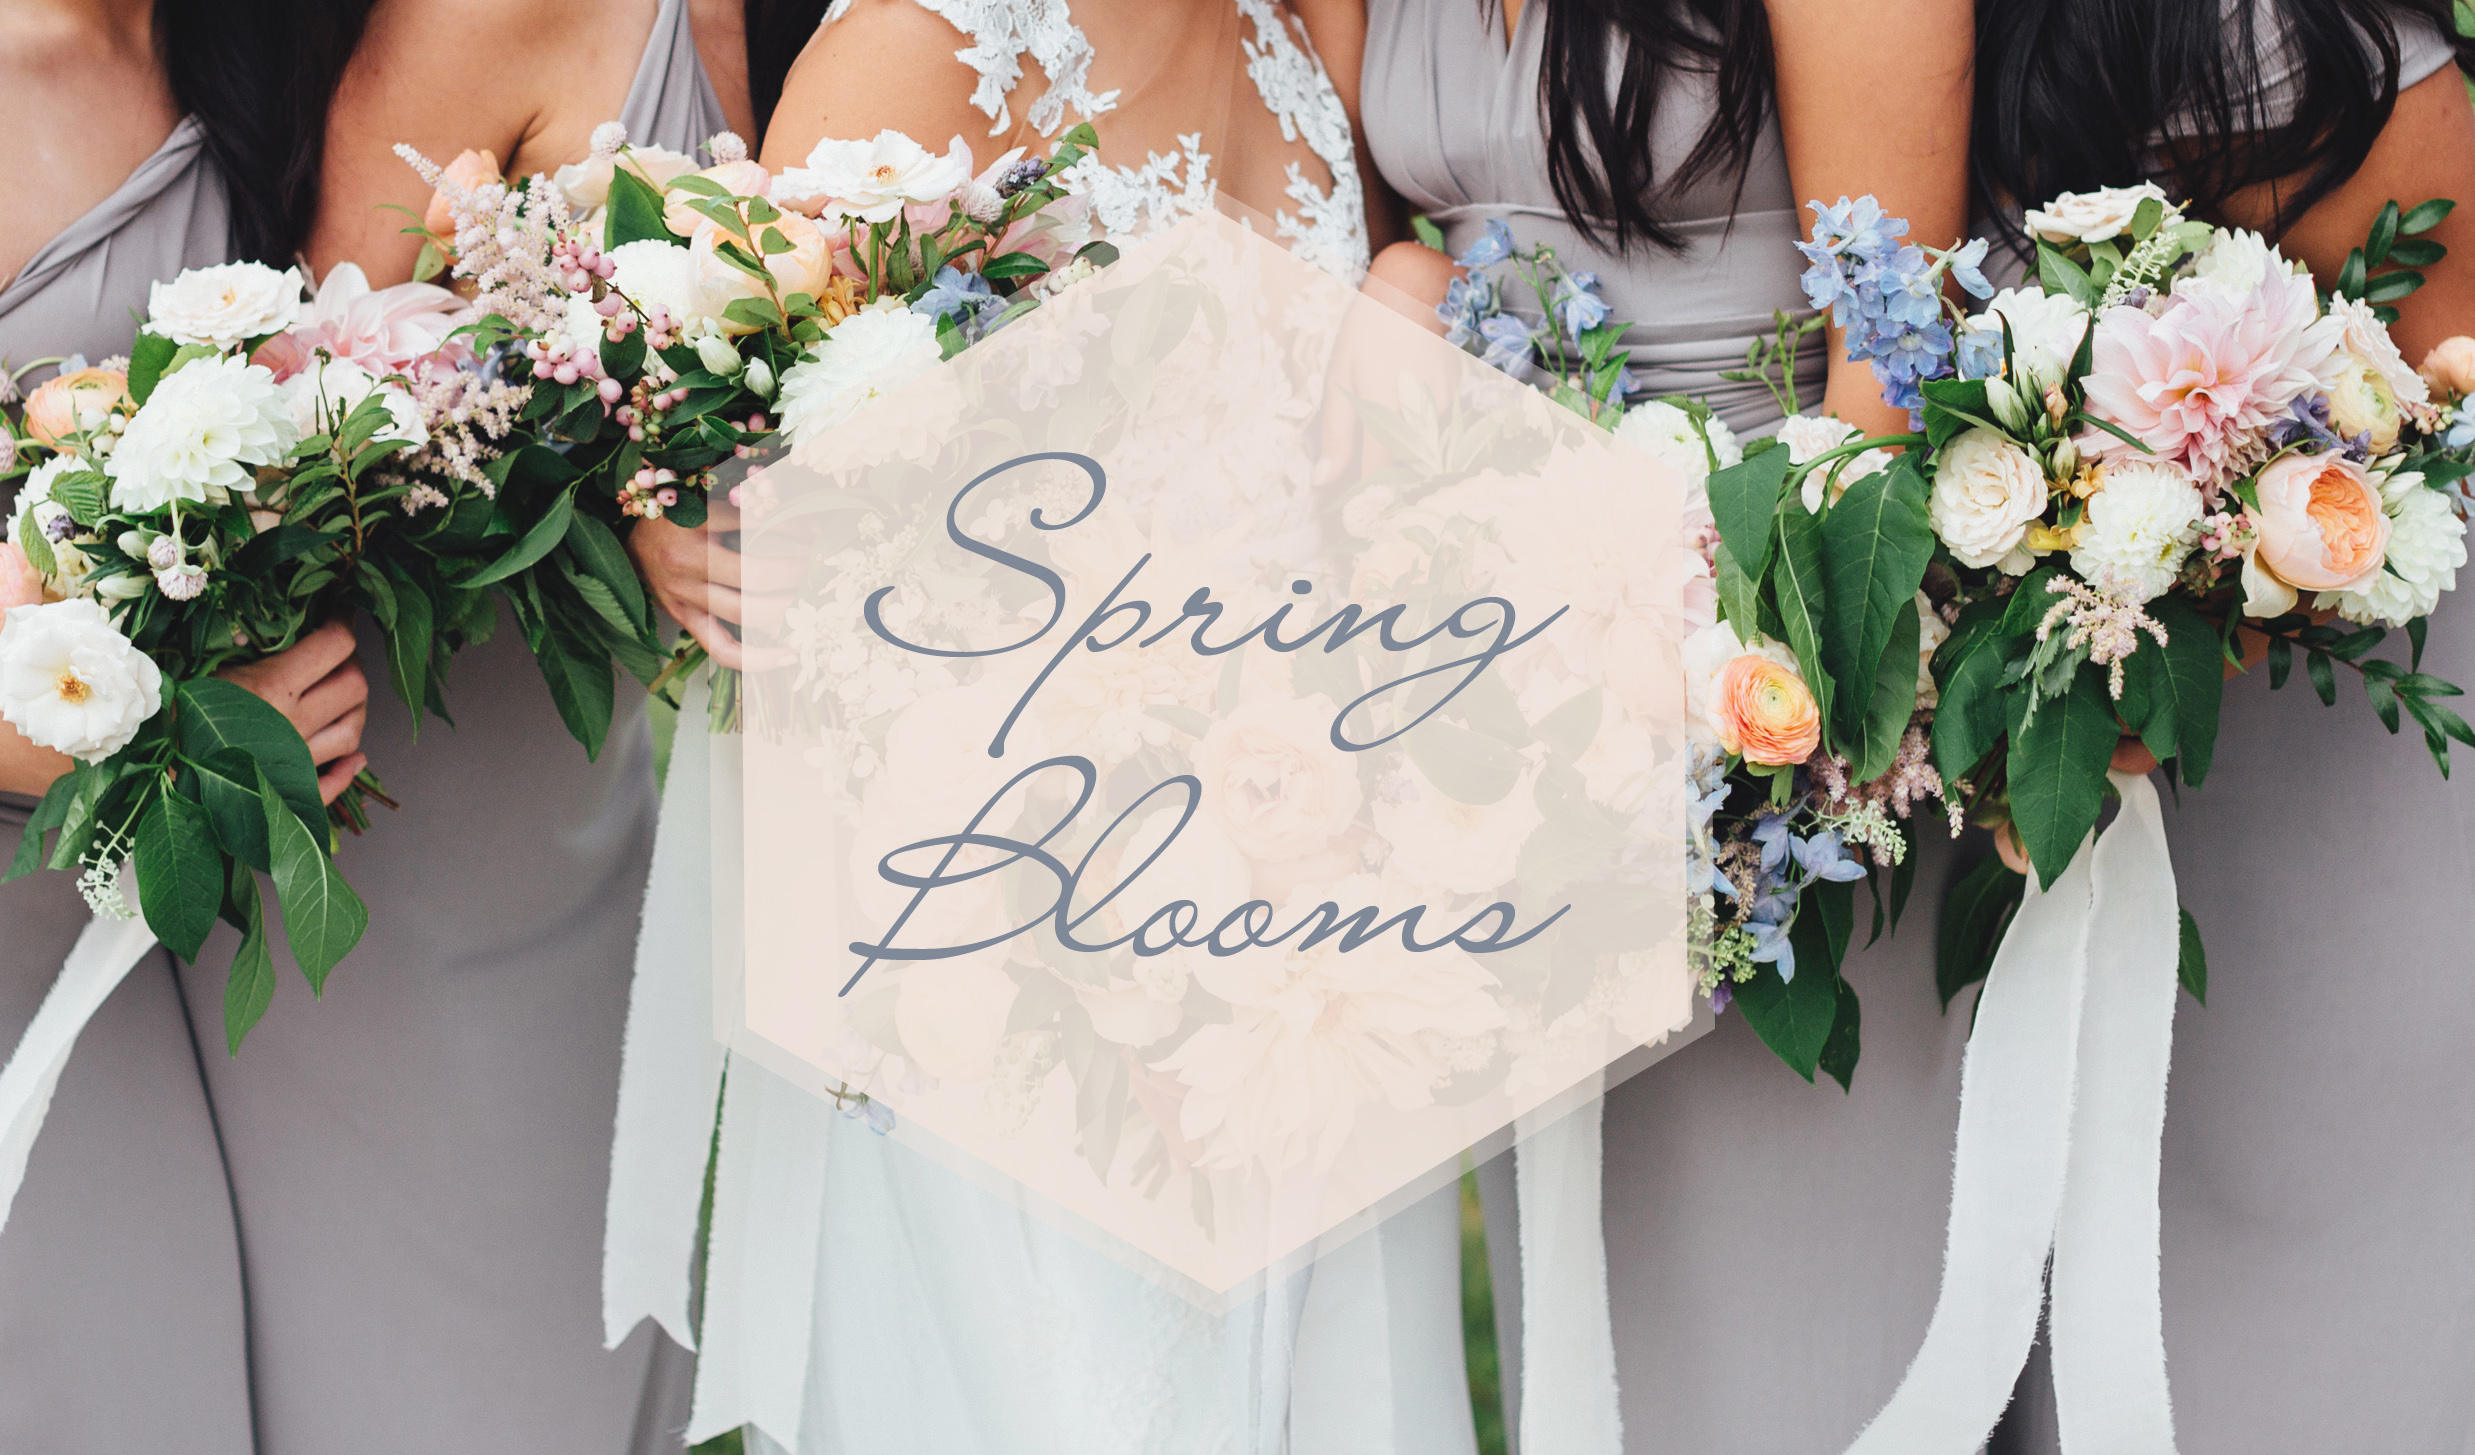 wedding flowers by season spring blooms saphire event group. Black Bedroom Furniture Sets. Home Design Ideas